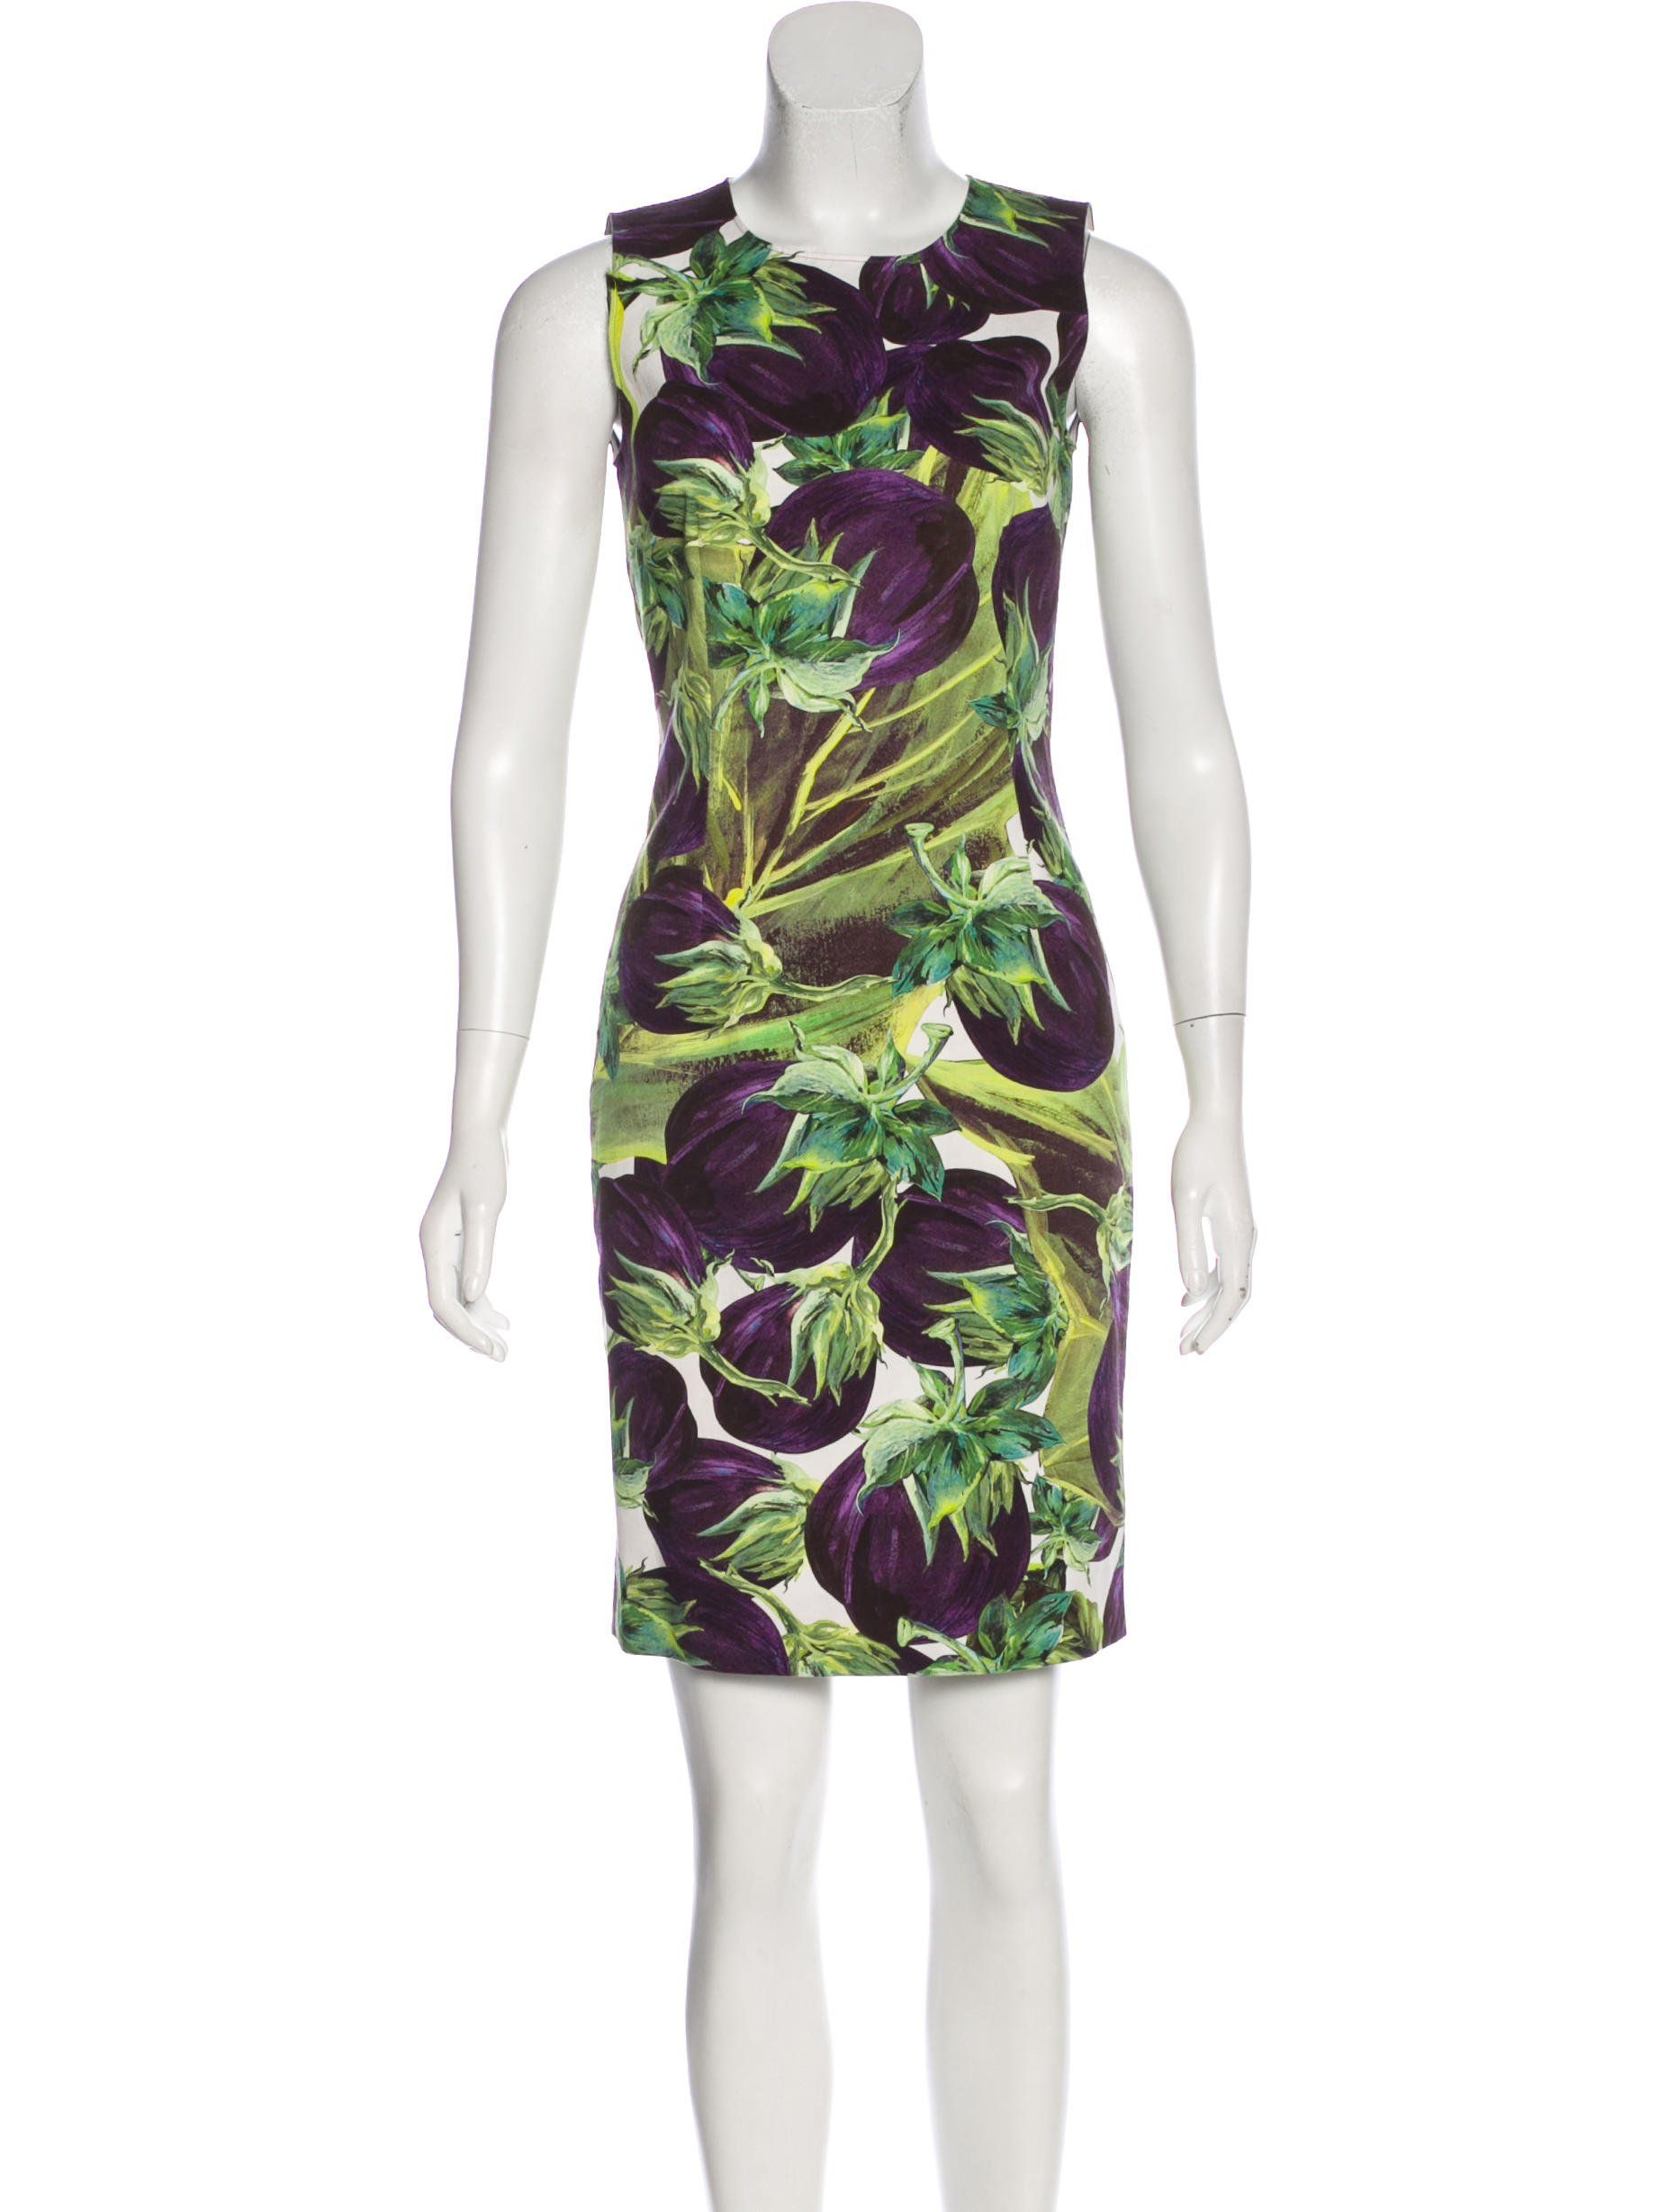 4b9458c1 Aubergine and multicolor Dolce & Gabbana sleeveless mini dress with  eggplant print throughout, crew neckline and concealed zip closure at back.